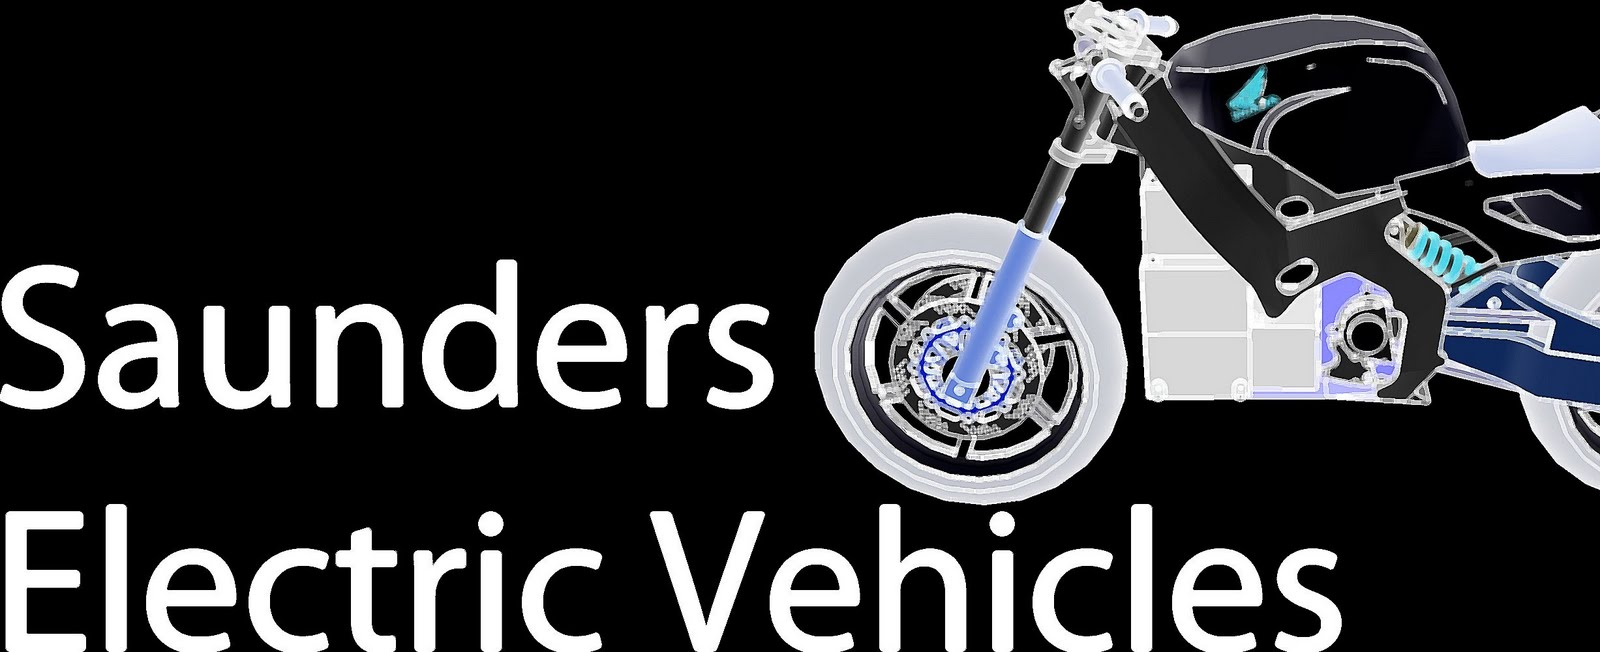 Saunders Electric Vehicles